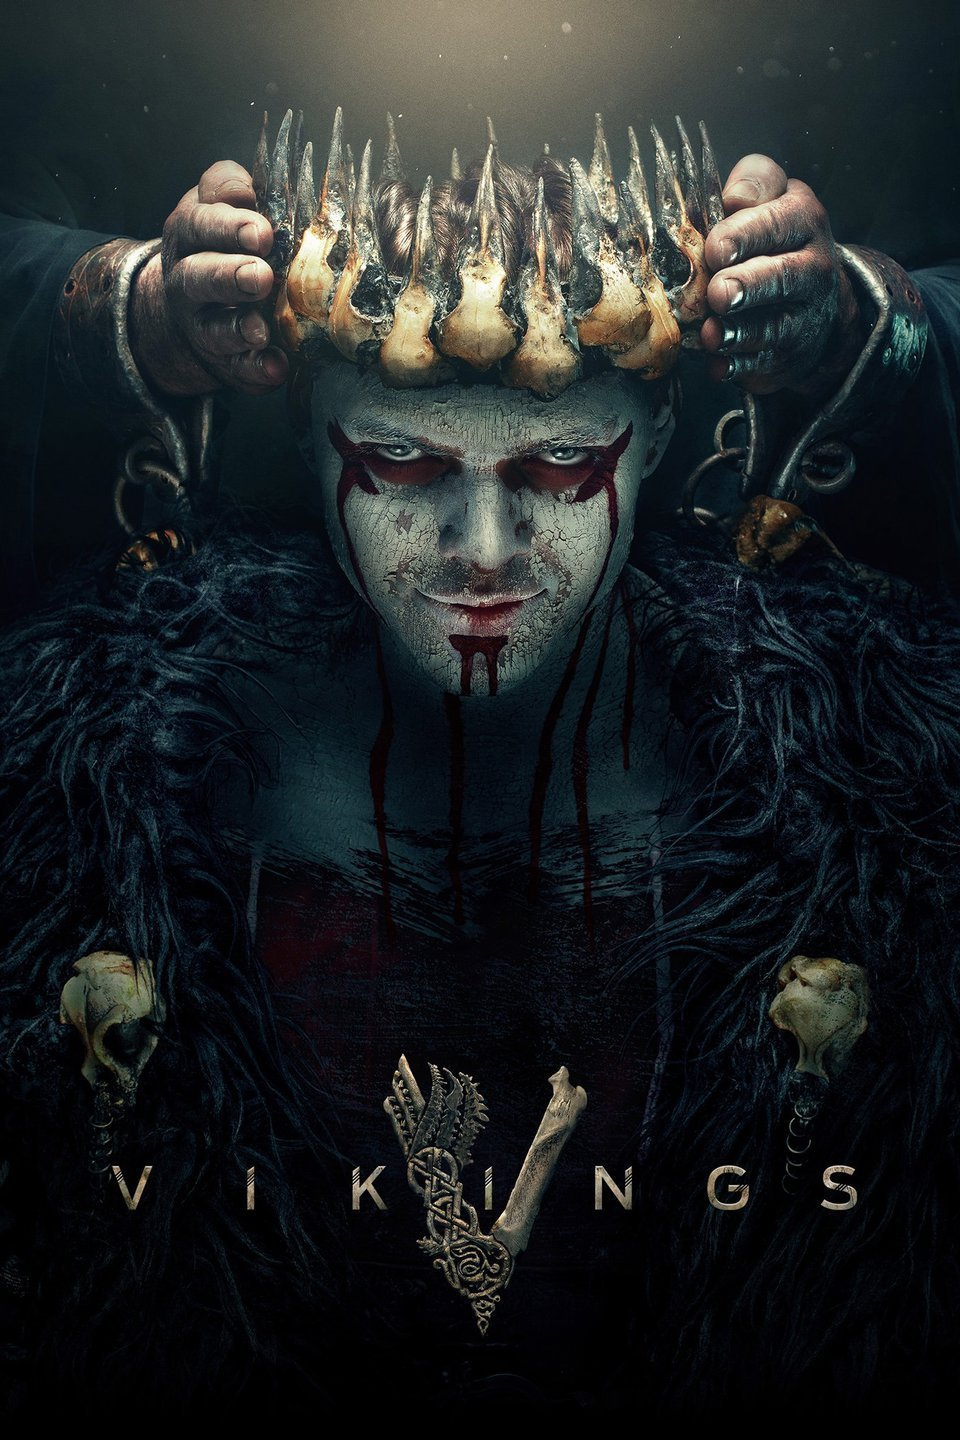 Vikings Season 5 - Season 5 continues to build on the story of Ragnars sons avenging their fathers death as well as continuing to expand their colonies. This is available on Amazon Prime.